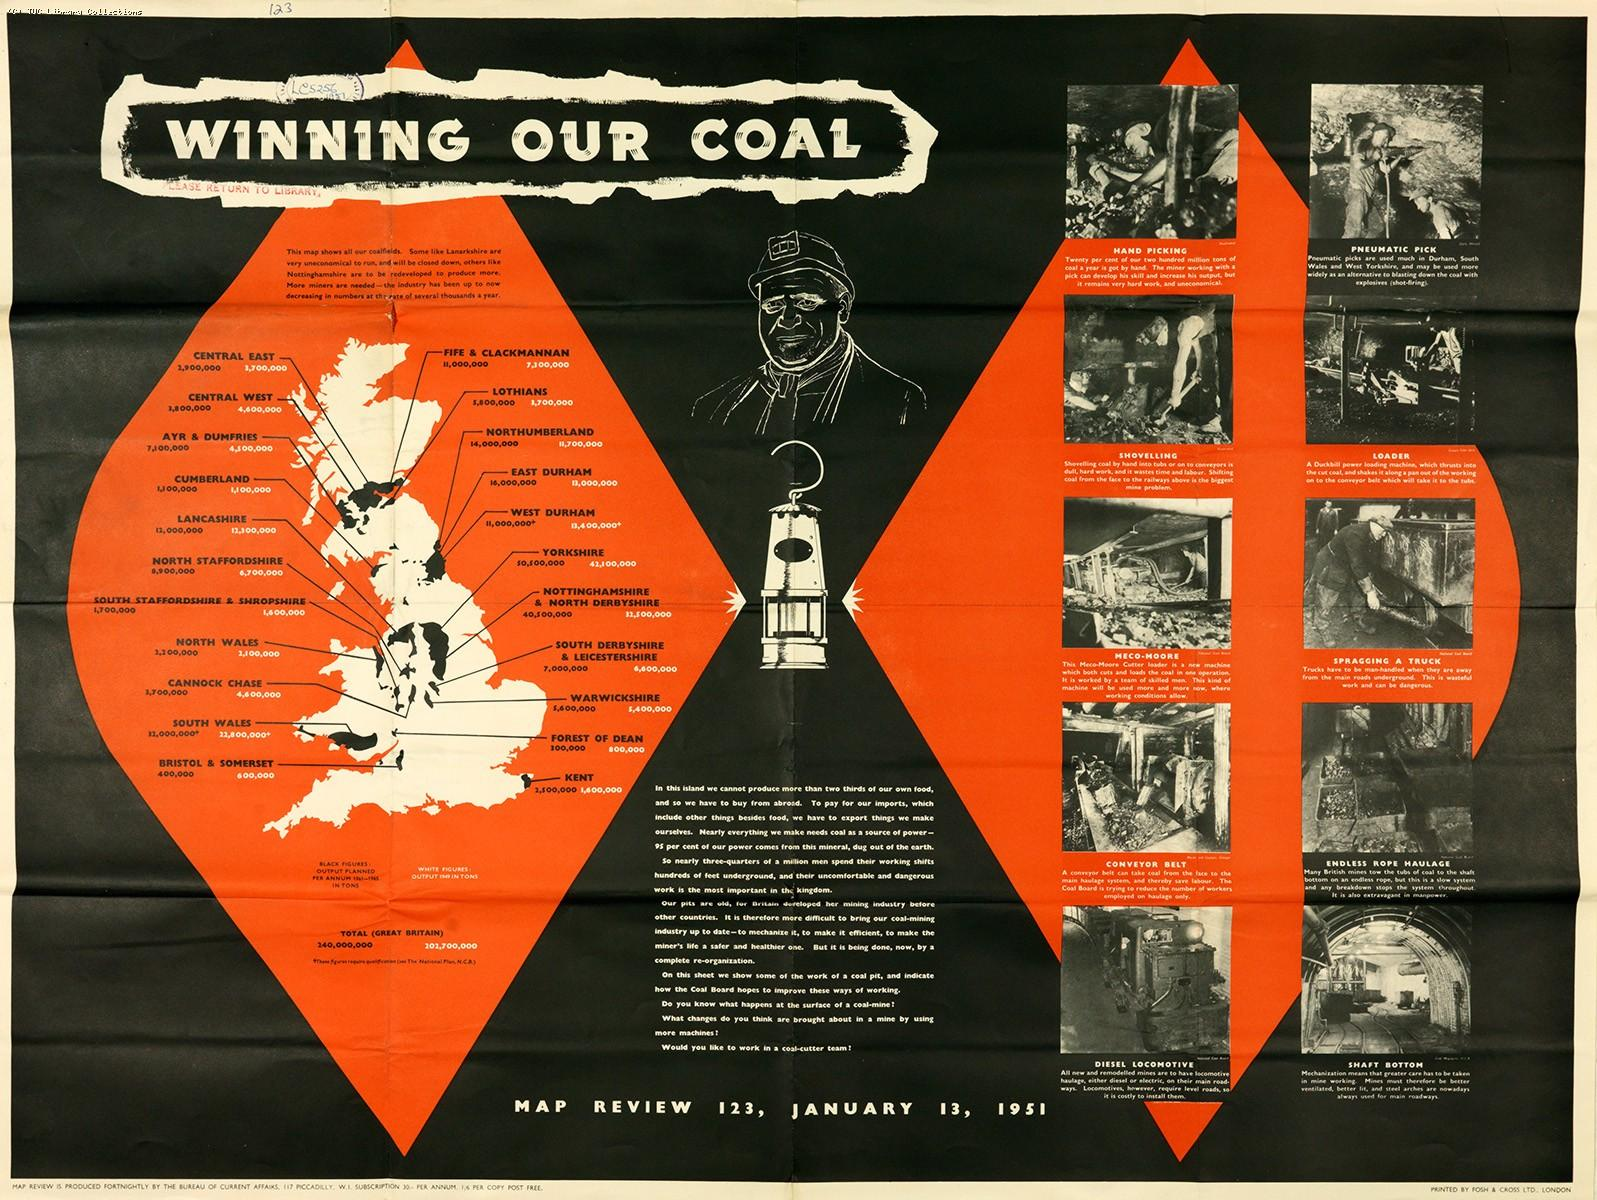 Winning our coal - poster, 1951